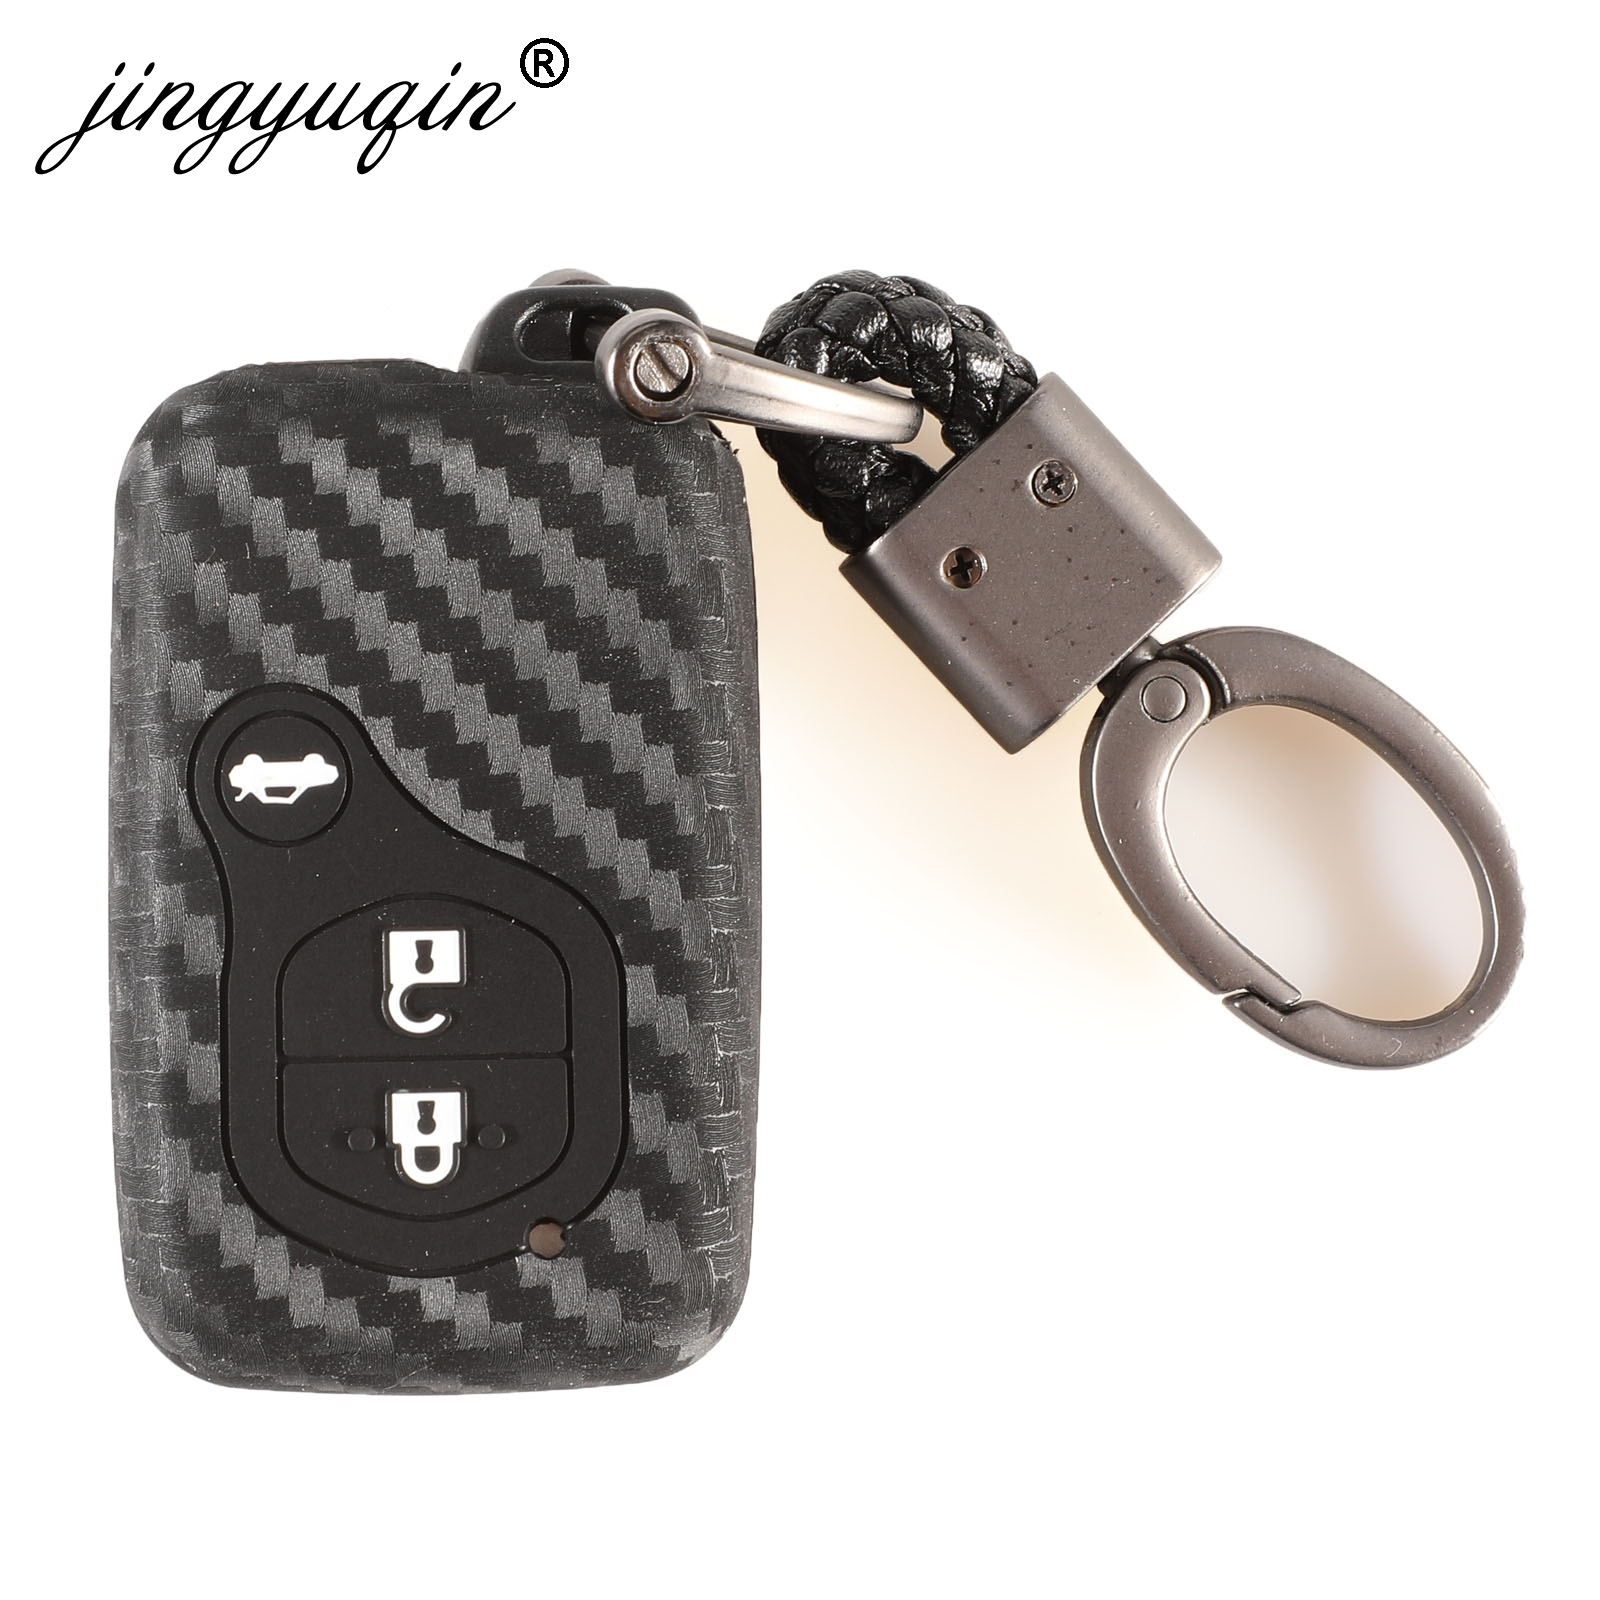 Rubber Carbon Car Key Case Cover For <font><b>Toyota</b></font> Land Cruiser Prado <font><b>150</b></font> Camry Prius Crown Subaru Foreste XV Keychain Silicone Holder image